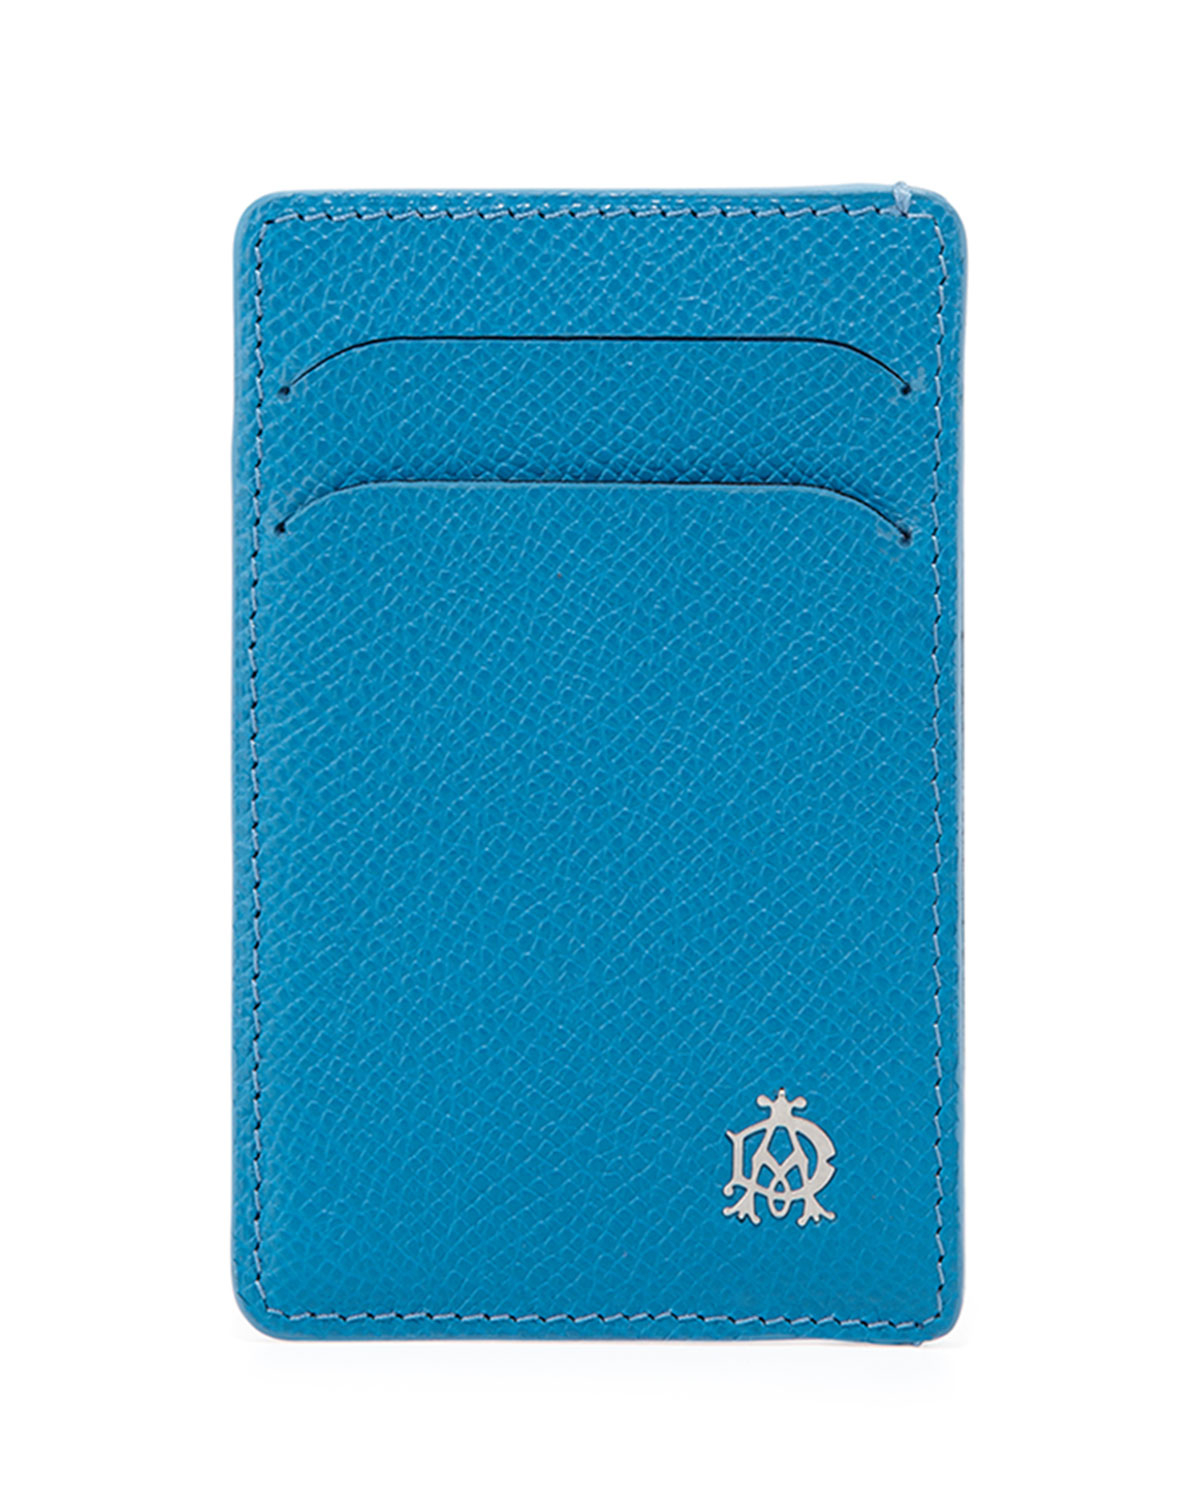 Lyst - Dunhill Bourdon Leather Card Case in Blue for Men